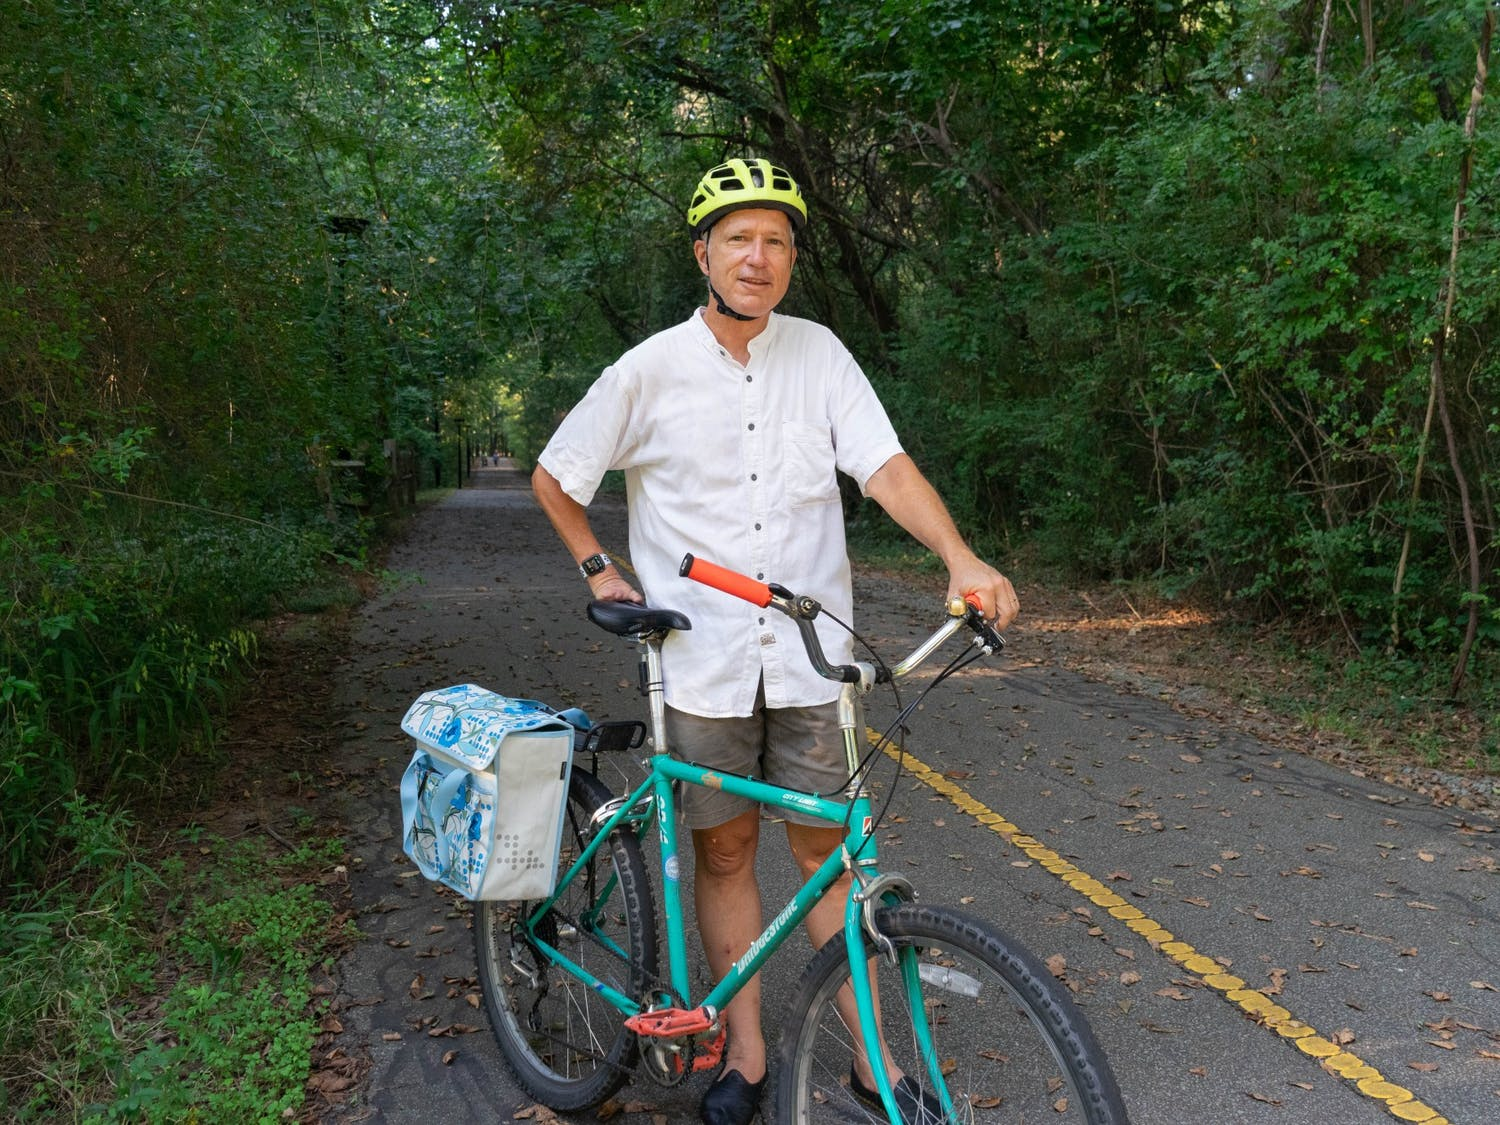 John Rees, President of Bicycle Alliance of Chapel Hill, poses with his bike on the Frances Shetley bikeway, which is a part of the 17-mile, shared-use path.